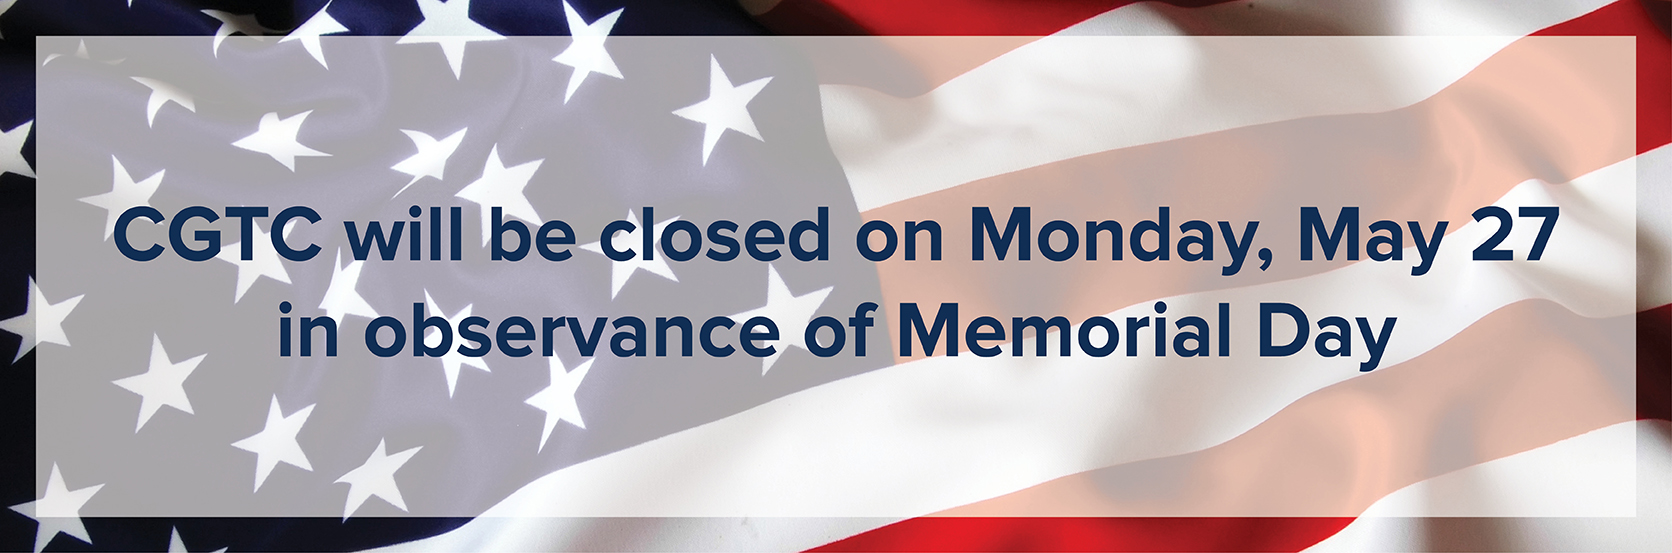 CGTC will be closed on Monday, May 27 in observance of Memorial Day